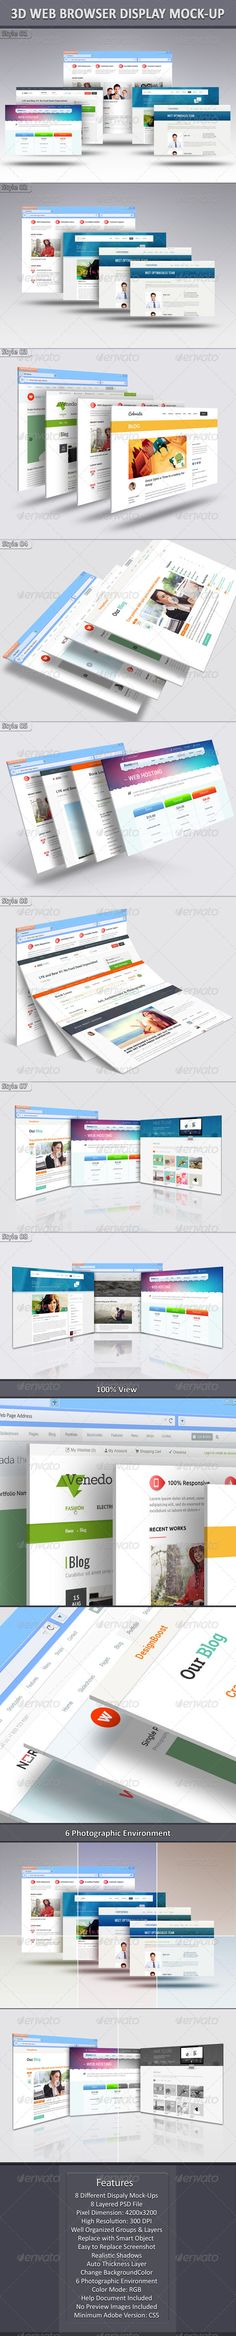 1000 Images About Website Mock Up On Pinterest: 3d web browser